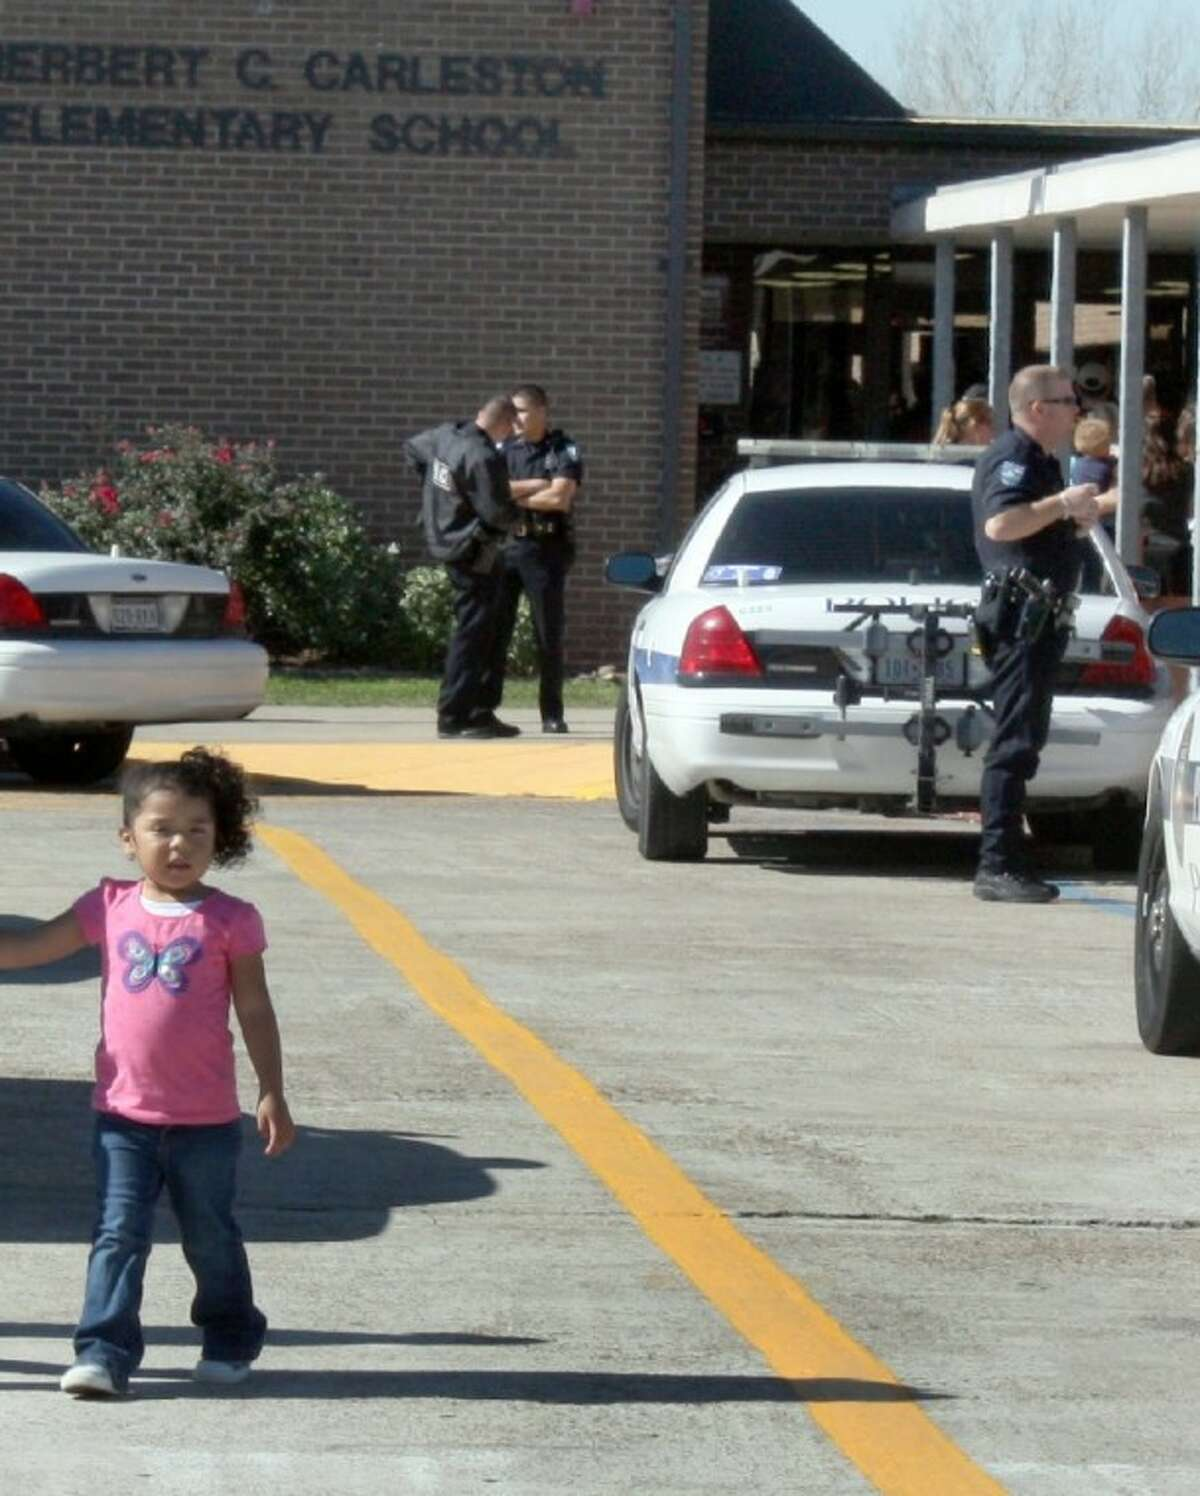 Pearland Pollice sent multiple patrols to the Carleston Elementary School, which was placed on lockdown while officers sweep the building and conducted a head count. Before the lockdown was lifted at noon, police officials repeated the head count and swept the building a second time. In addition, police officials sealed the perimeter and searched the grounds outside the school.